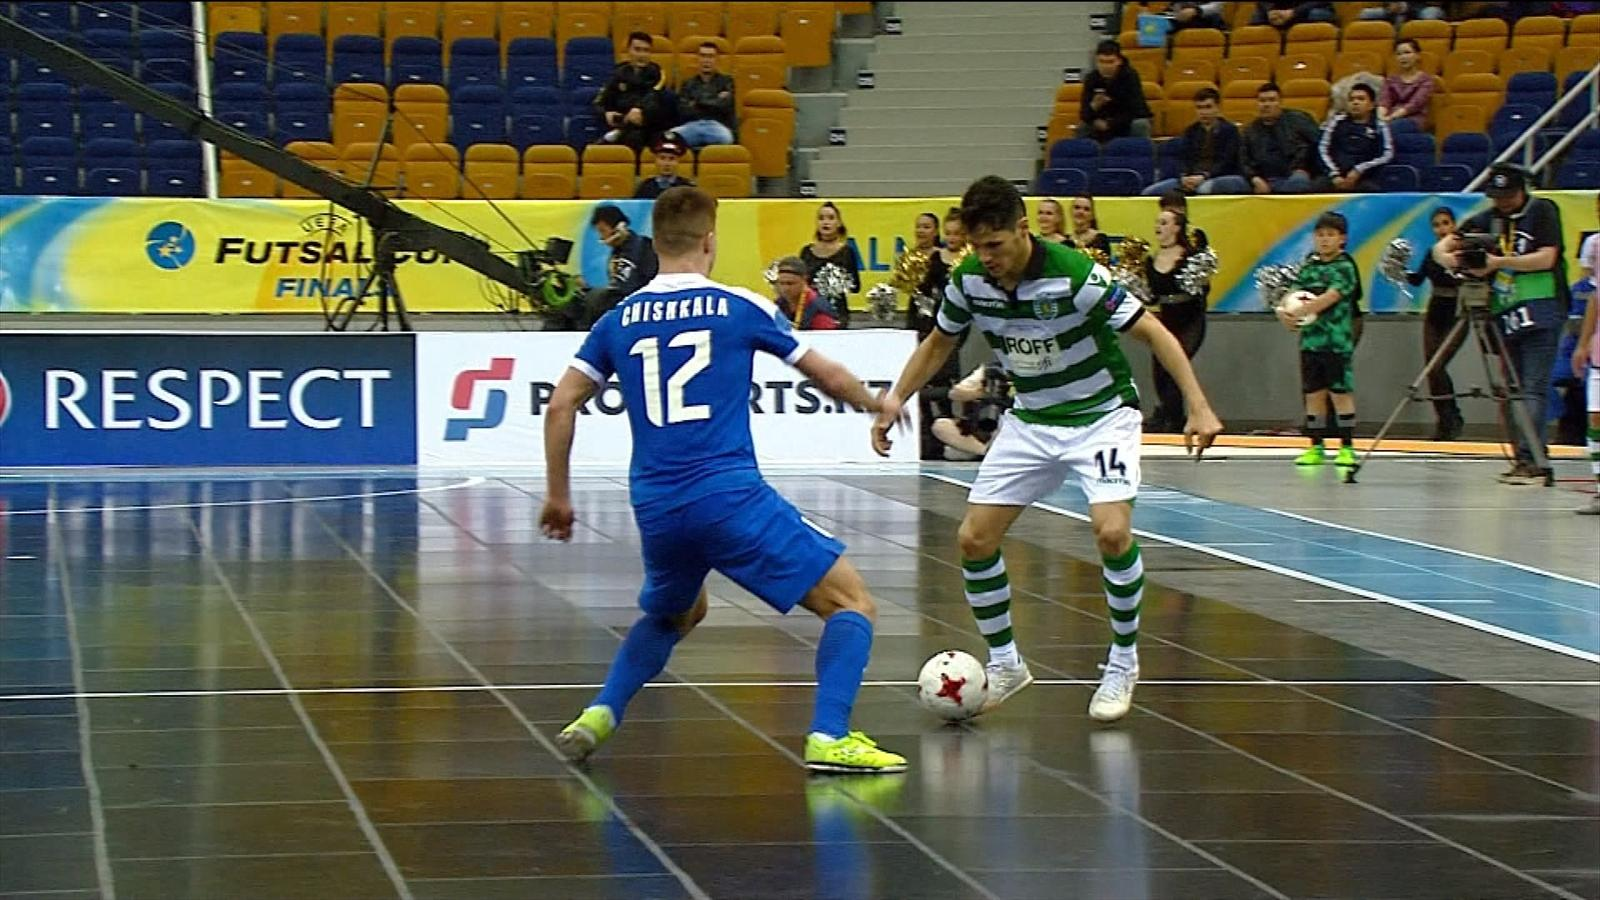 Highlights  Sporting reach Futsal Cup final with win over Ugra 1d35a46ef0855